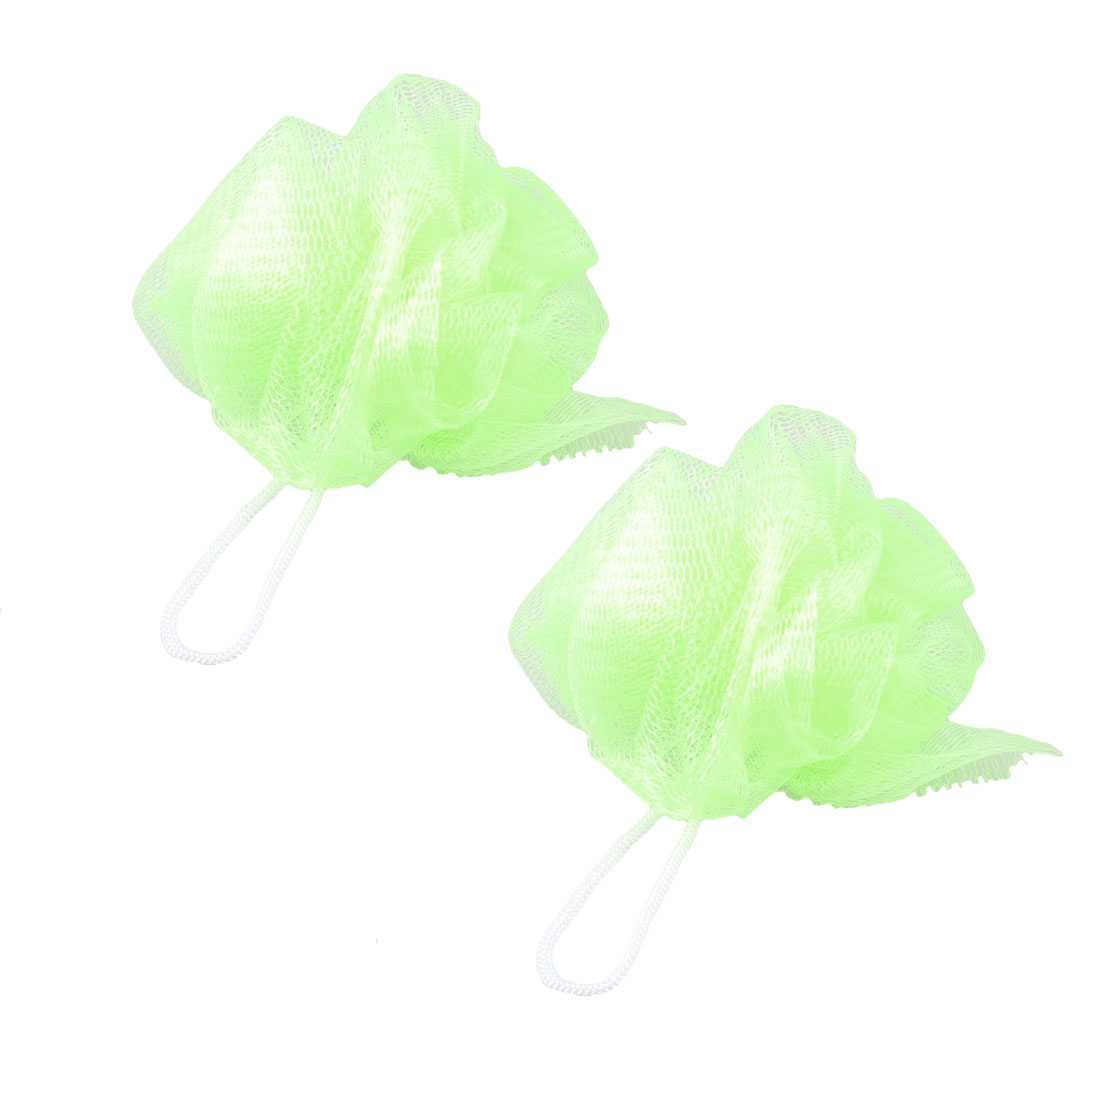 Bathroom Body Washing Shower Ball Shape Light Green Nylon Mesh Nets Pouf 2 Pcs